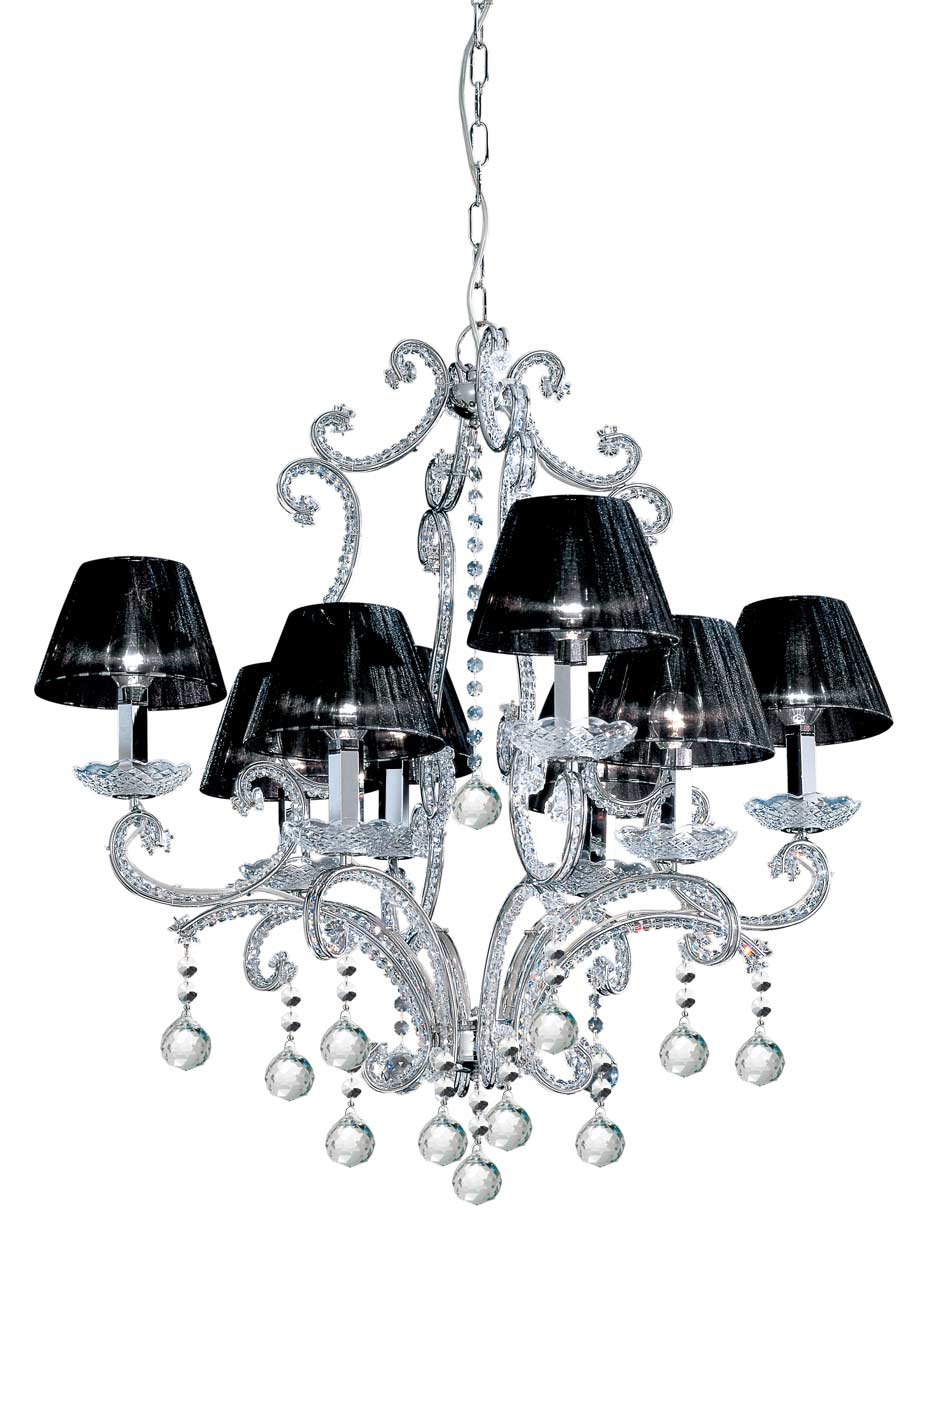 8 light chrome and crystal chandelier with black silk shades 8 light chrome and crystal chandelier with black silk shades masiero mozeypictures Images